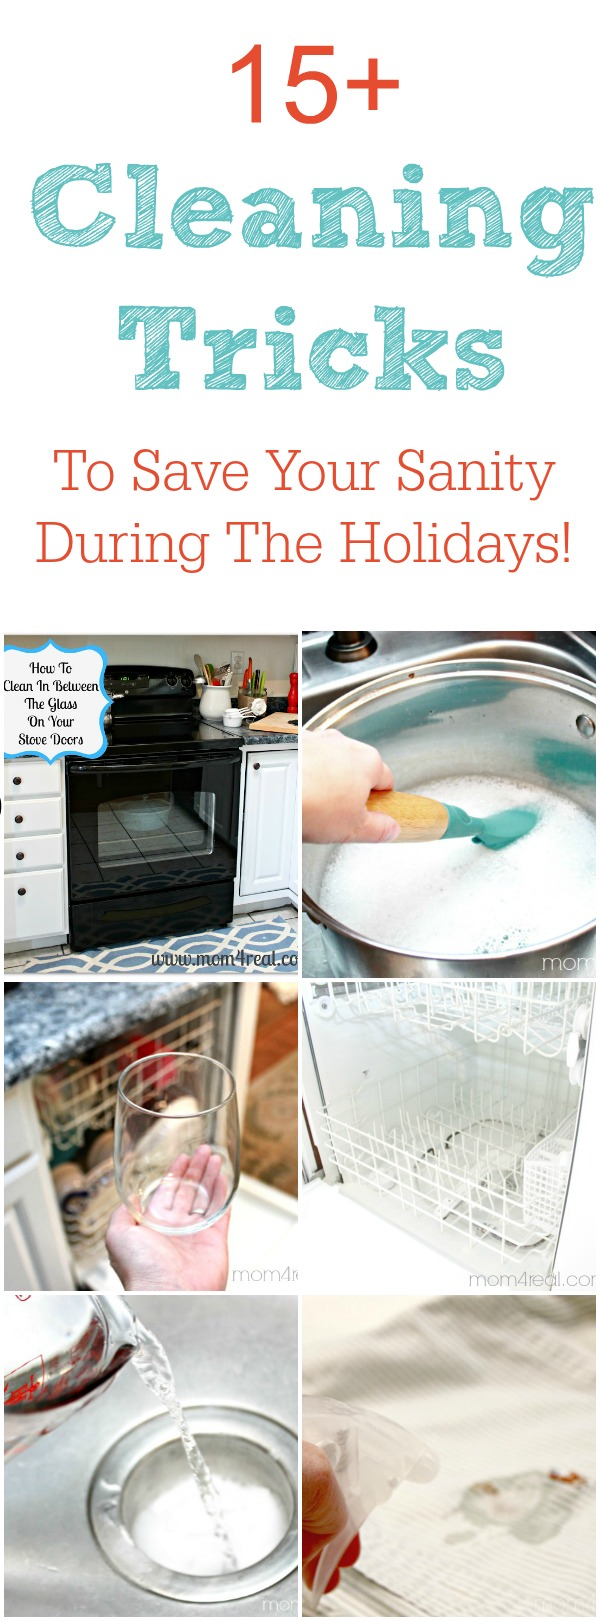 Cleaning-Tricks-To-Save-Your-Sanity-During-The-Holidays